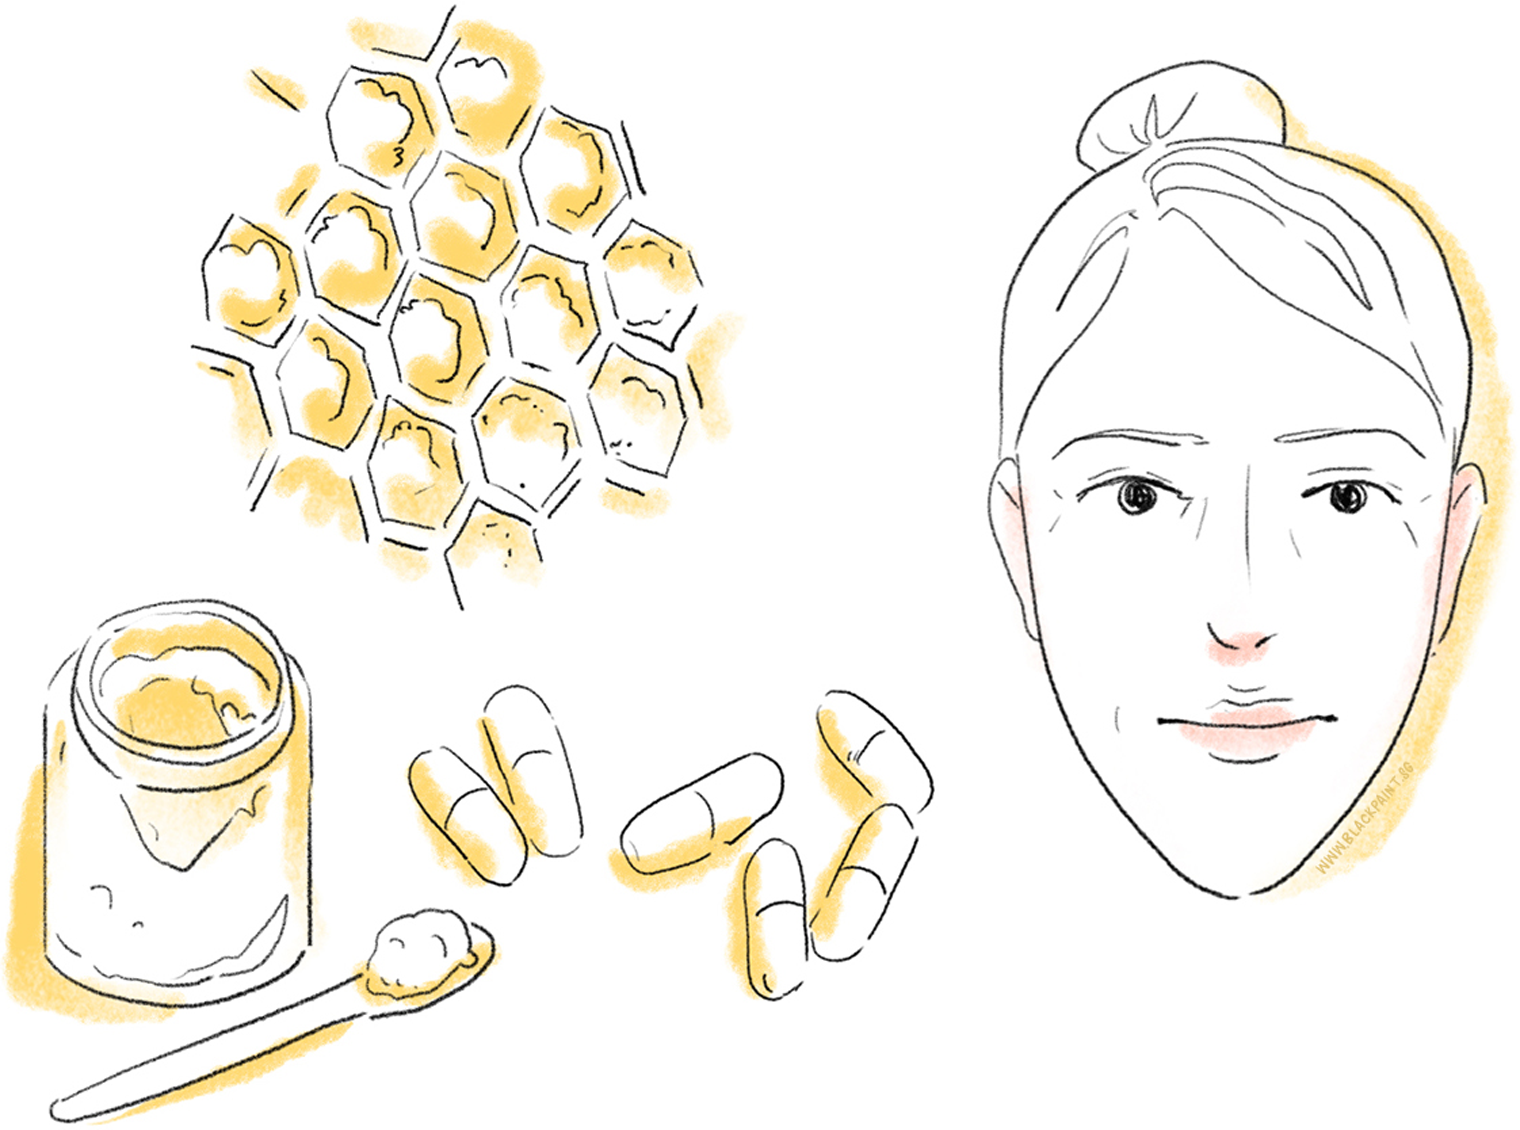 illustration of royal jelly being well known as an ingredient for anti-aging